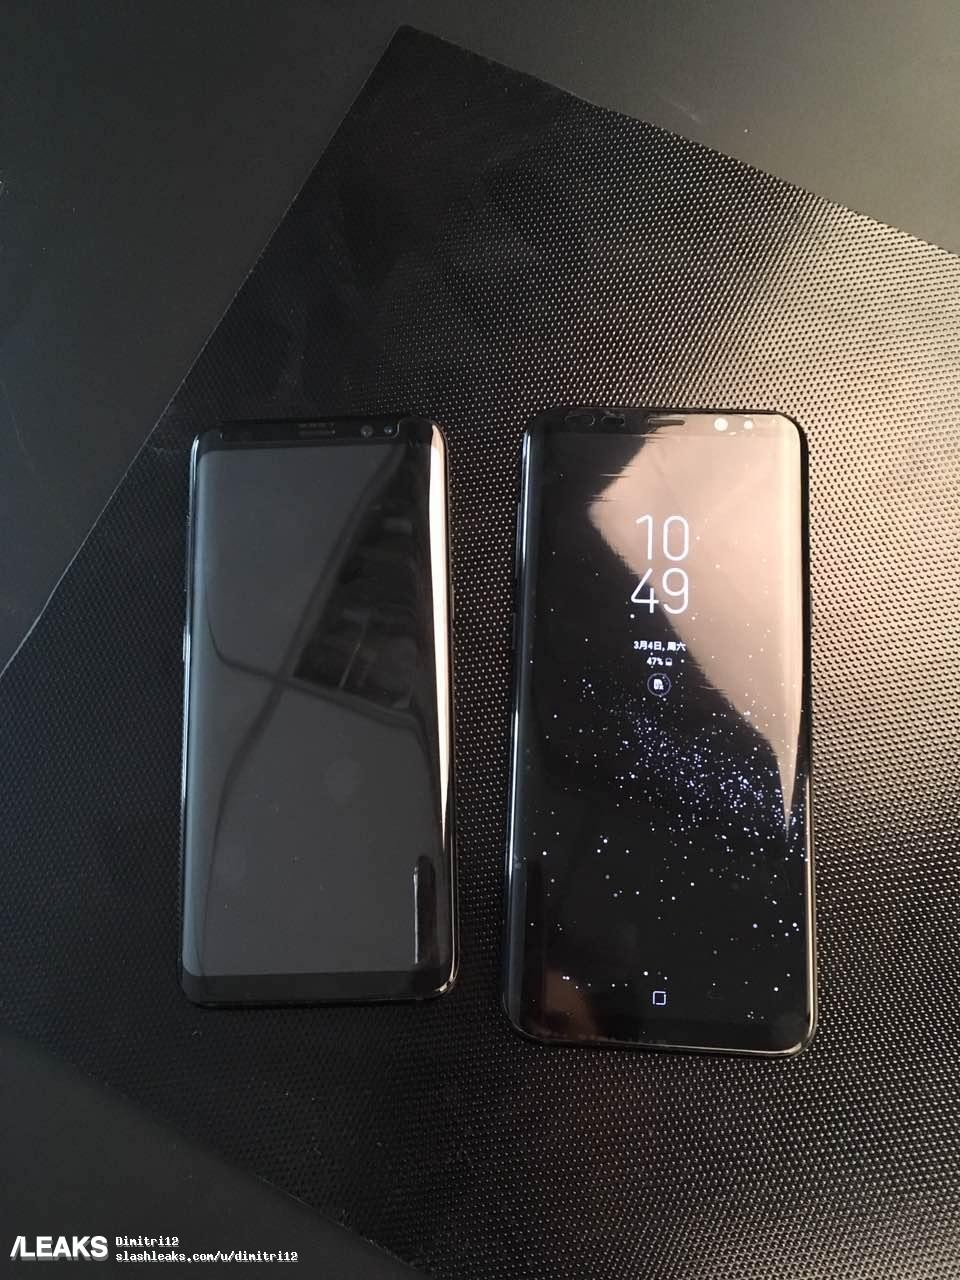 Look Samsung Galaxy S8 And S8 Pictured Together